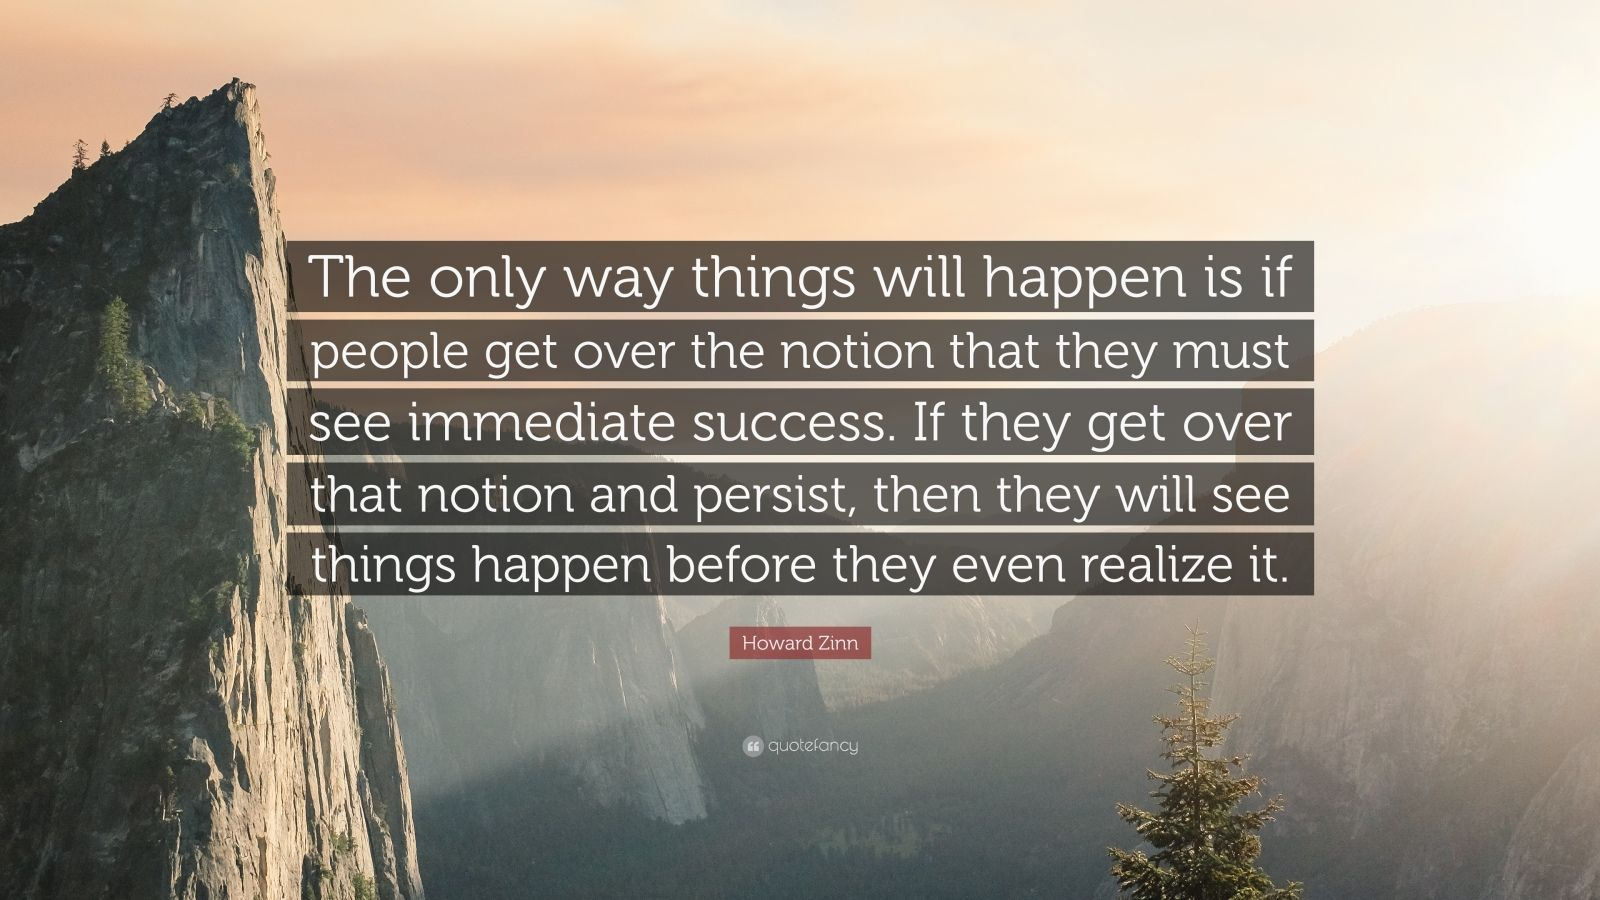 """Howard Zinn Quote: """"The only way things will happen is if people get over the notion that they must see immediate success. If they get over that notion and persist, then they will see things happen before they even realize it."""""""